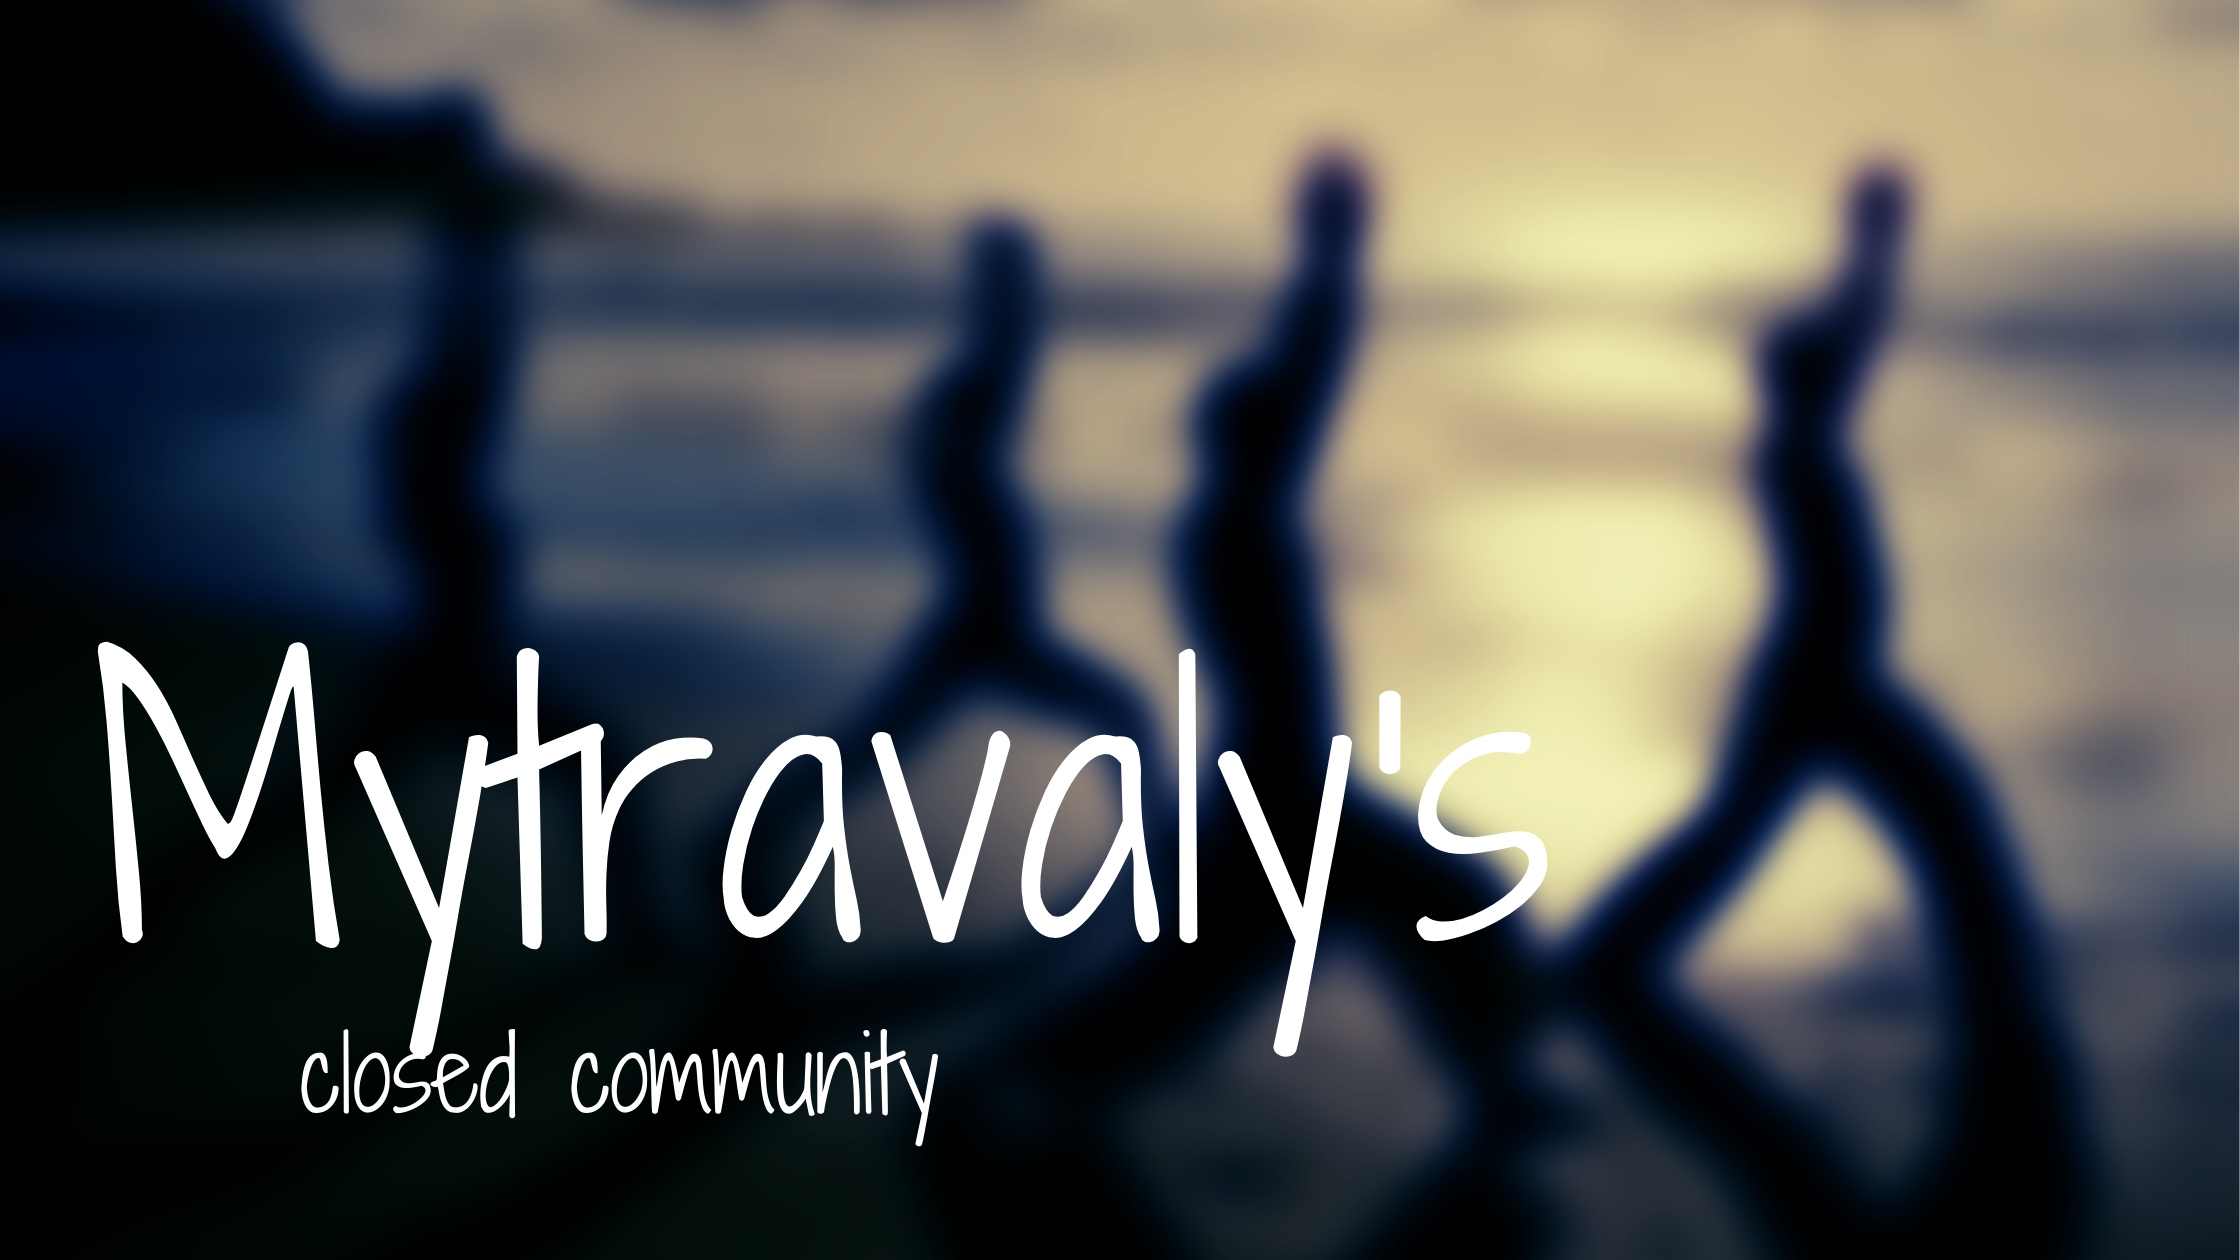 Mytravaly's closed community- your online travel journal